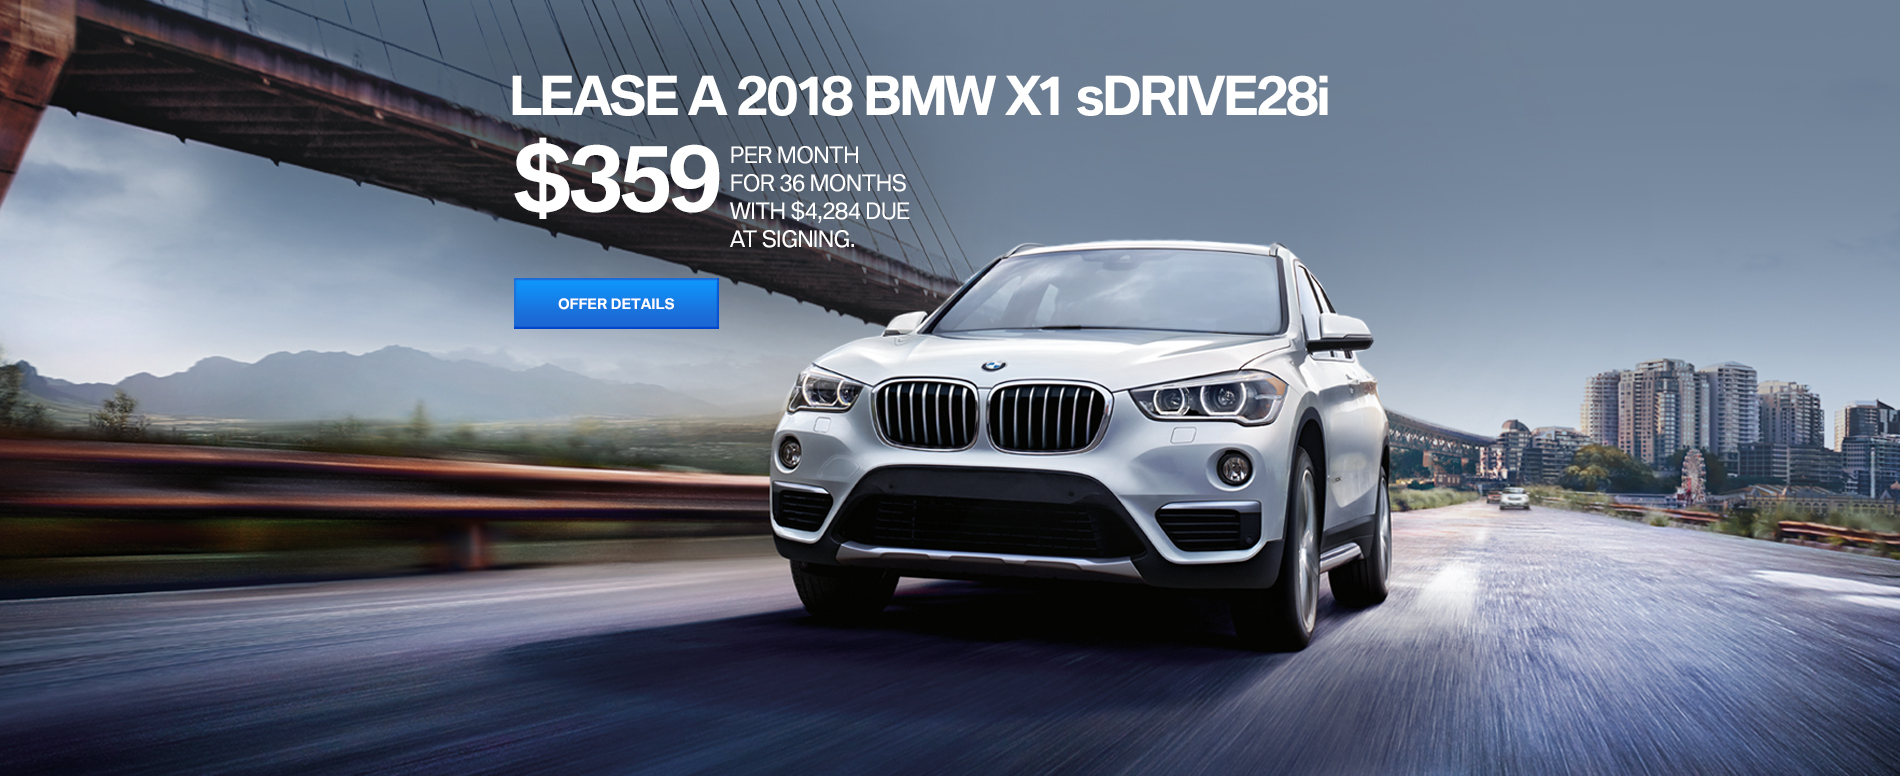 LEASE A 2018 BMW X1 sDRIVE28i $359 /MO FOR 36 MONTHS WITH $4,284